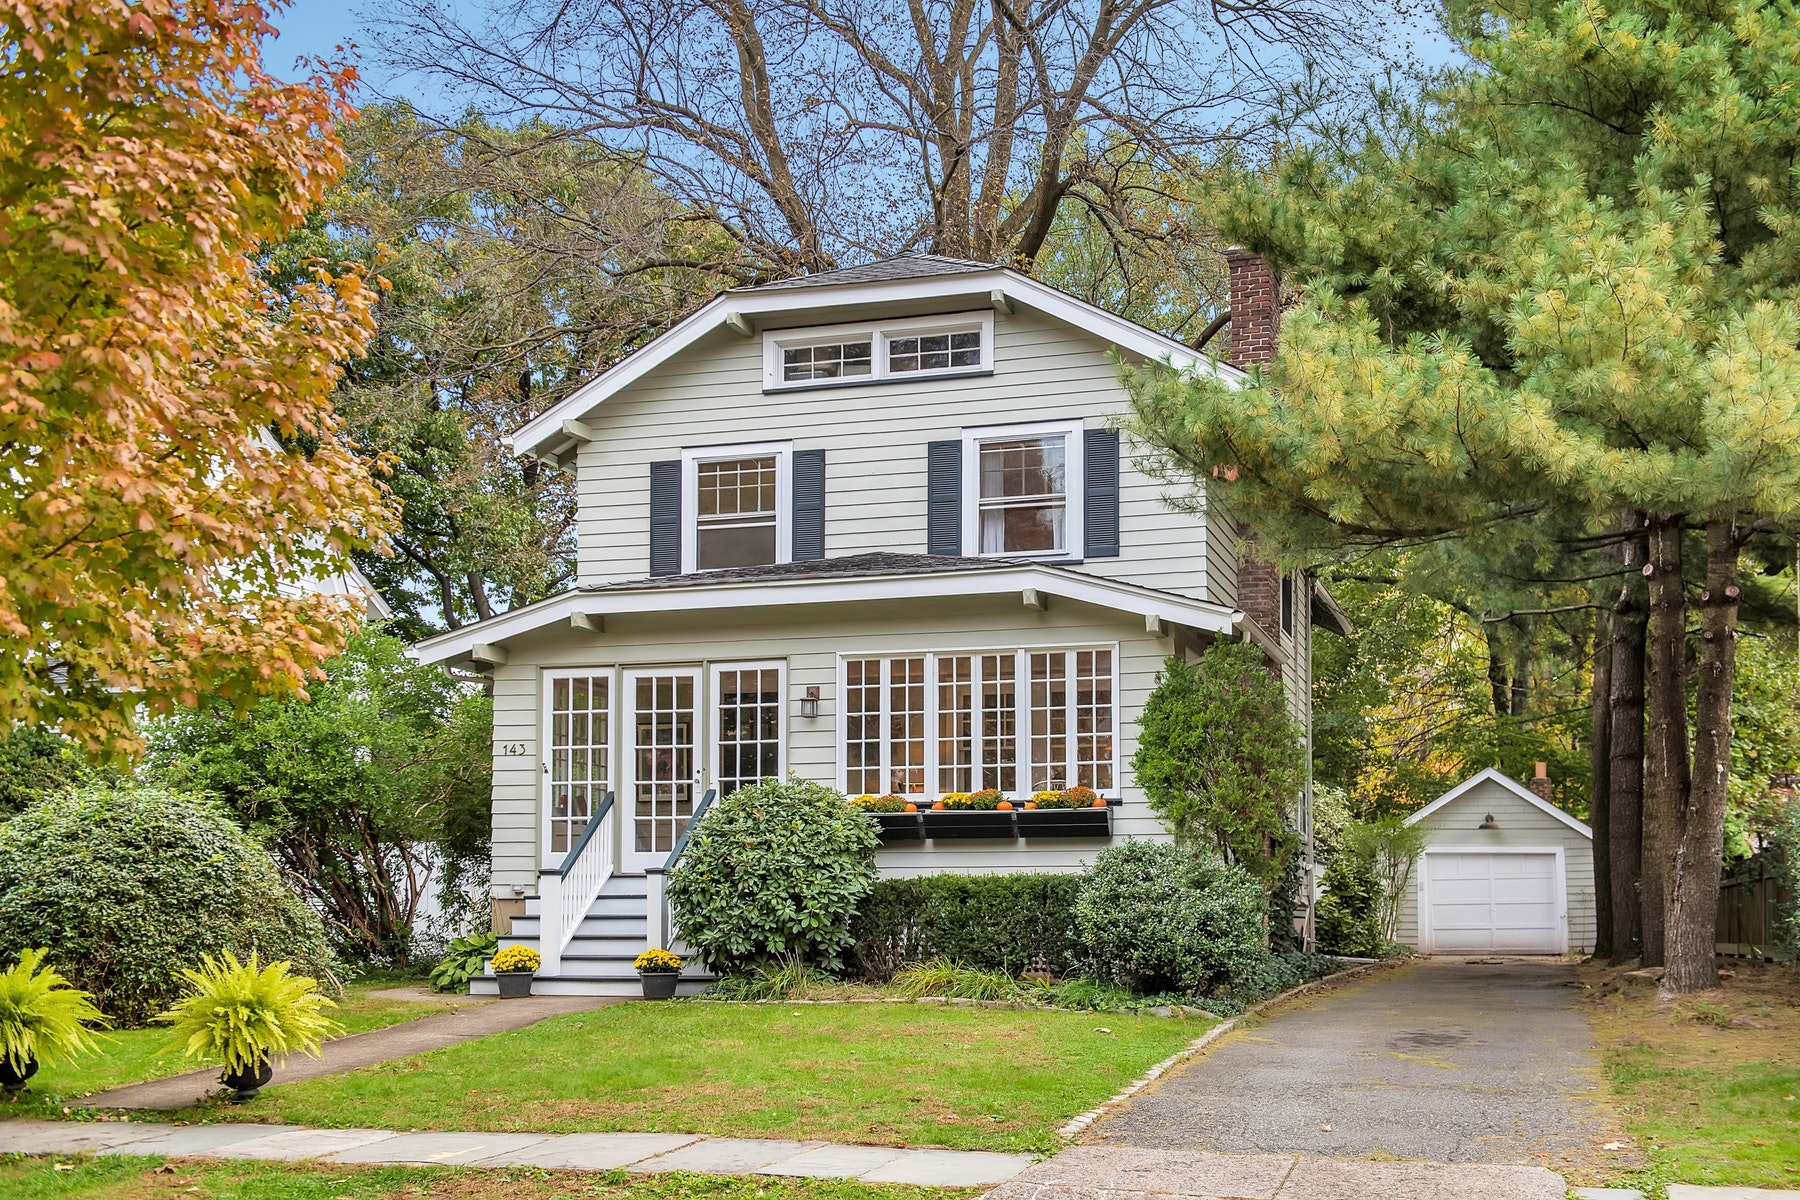 Single Family Home for Sale at Craftsman Colonial 143 Sherman Avenue, Glen Ridge, New Jersey 07028 United States